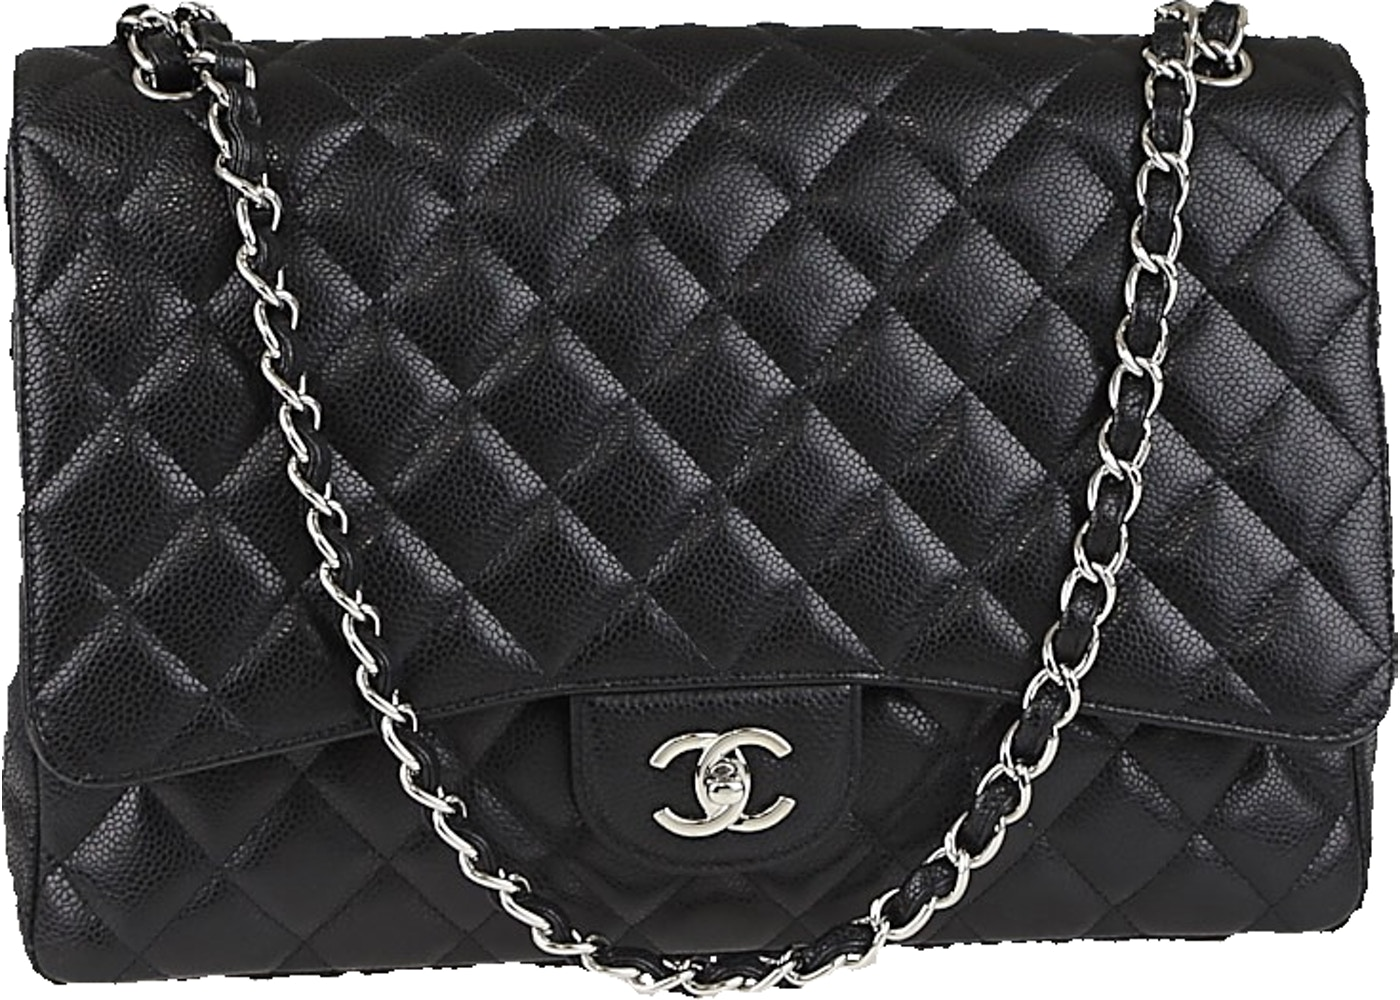 9a647de3456f Sell. or Ask. View All Bids. Chanel Classic Single Flap ...